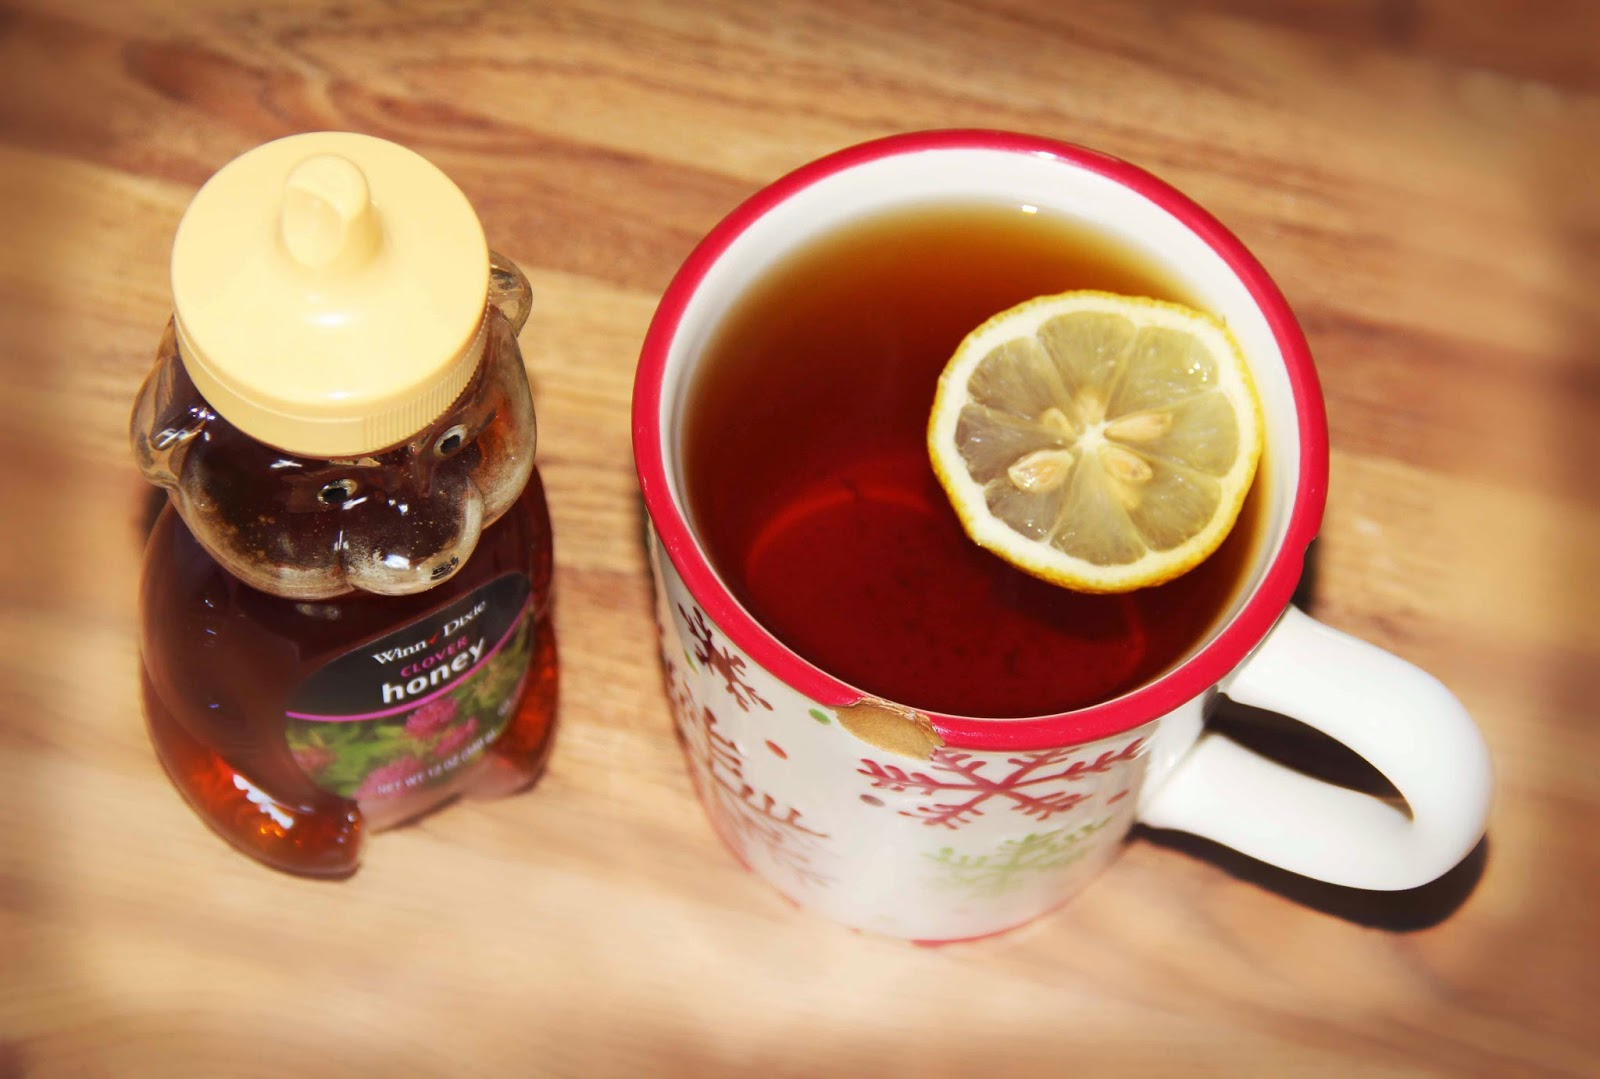 Green tea with lemon and honey